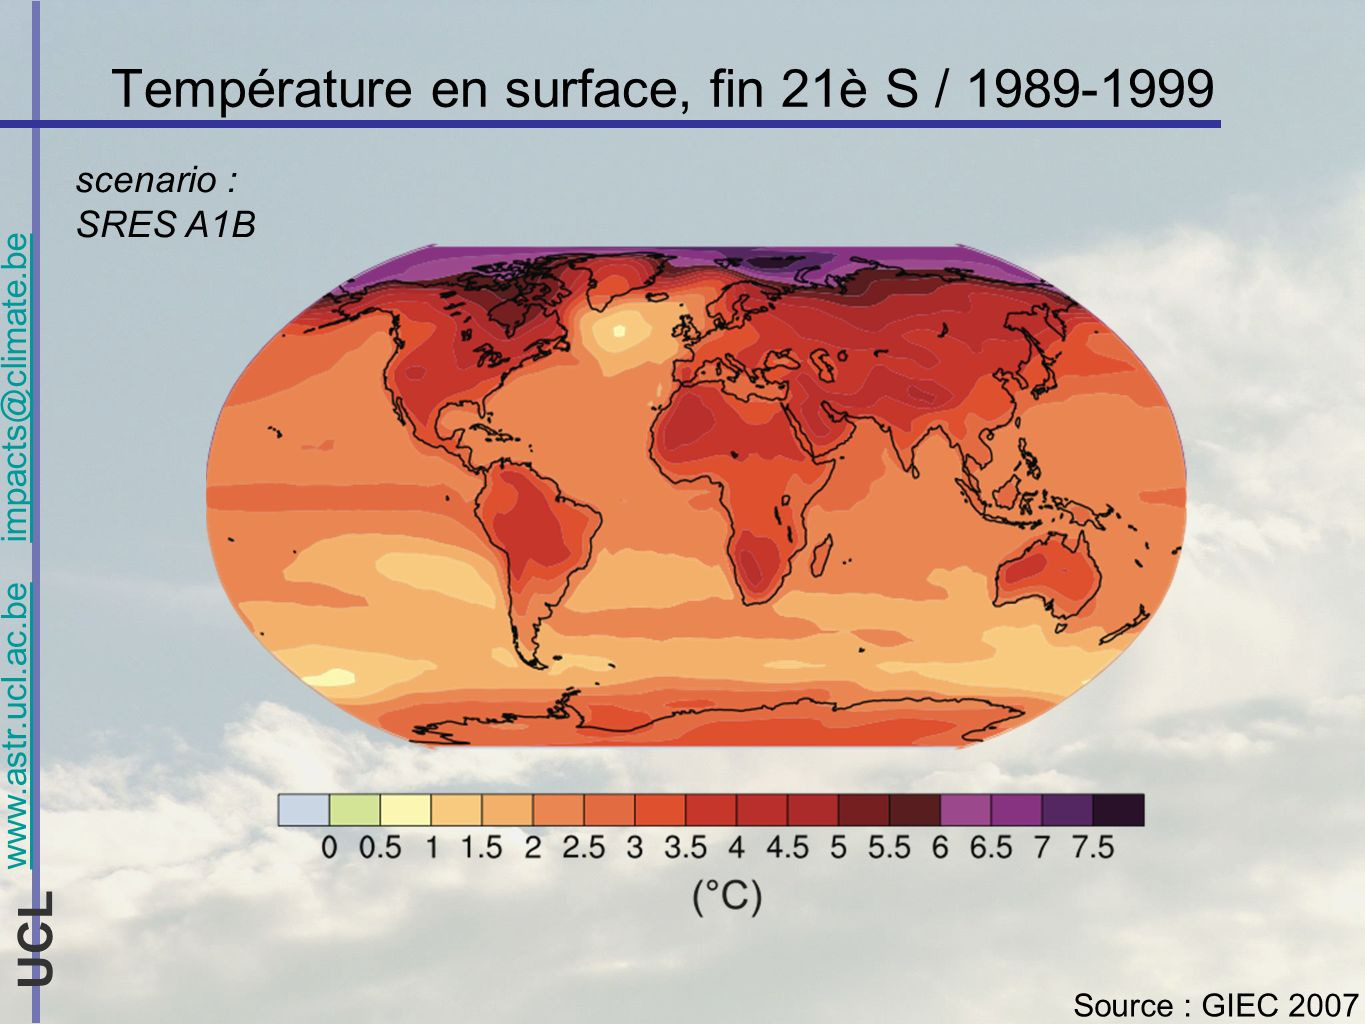 www.astr.ucl.ac.be impacts@climate.be UCL 21st century temperature change Relative to 1901-1950 average